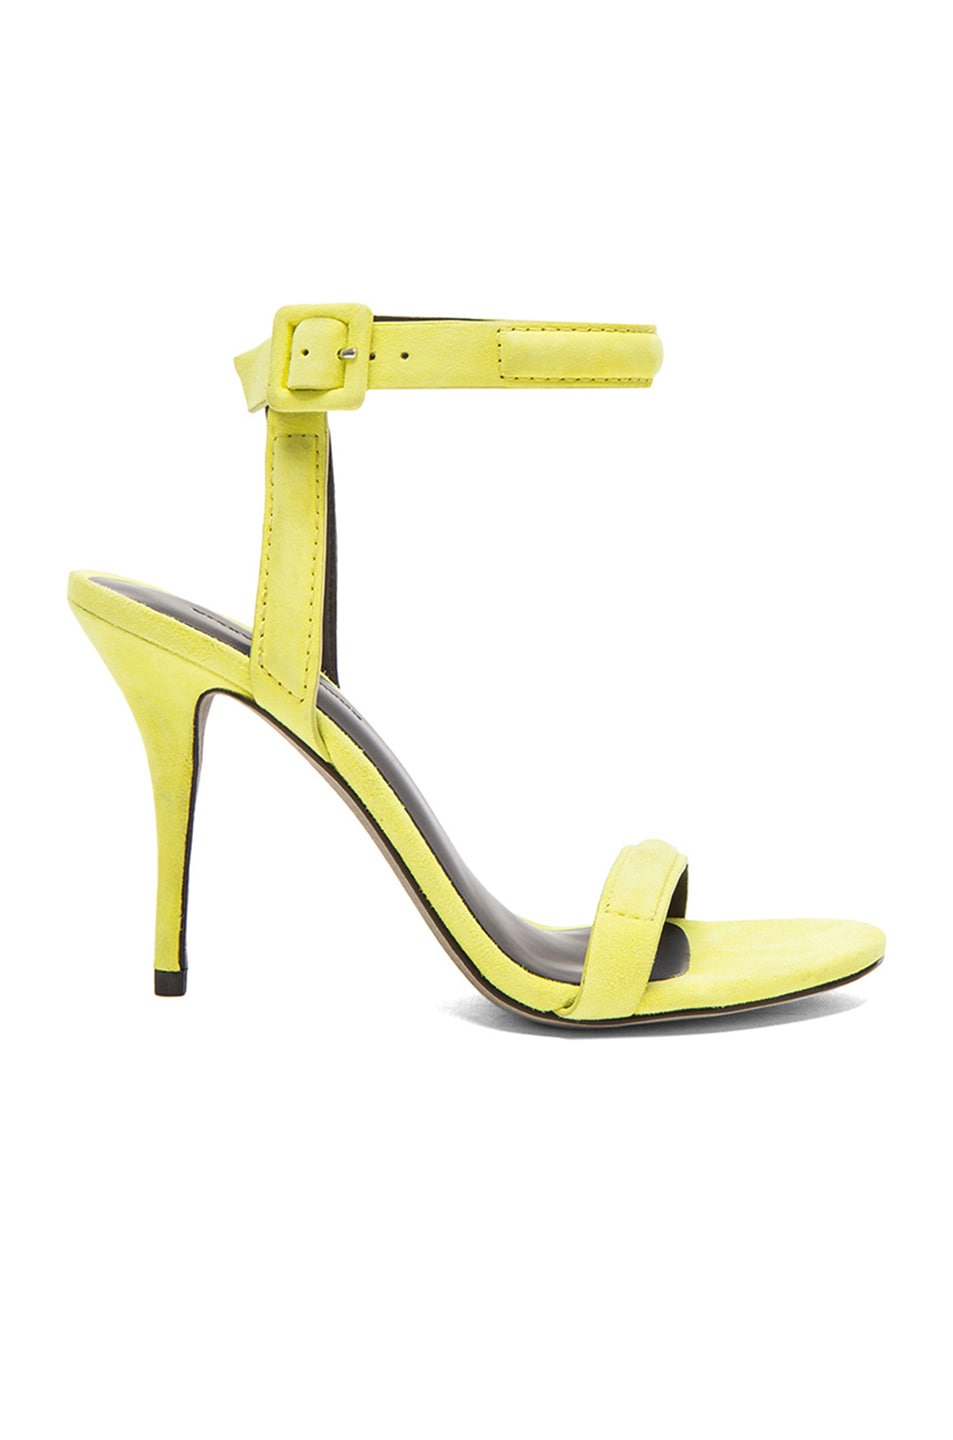 Image 1 of Alexander Wang Antonia Suede Ankle Strap Heels in Citrine